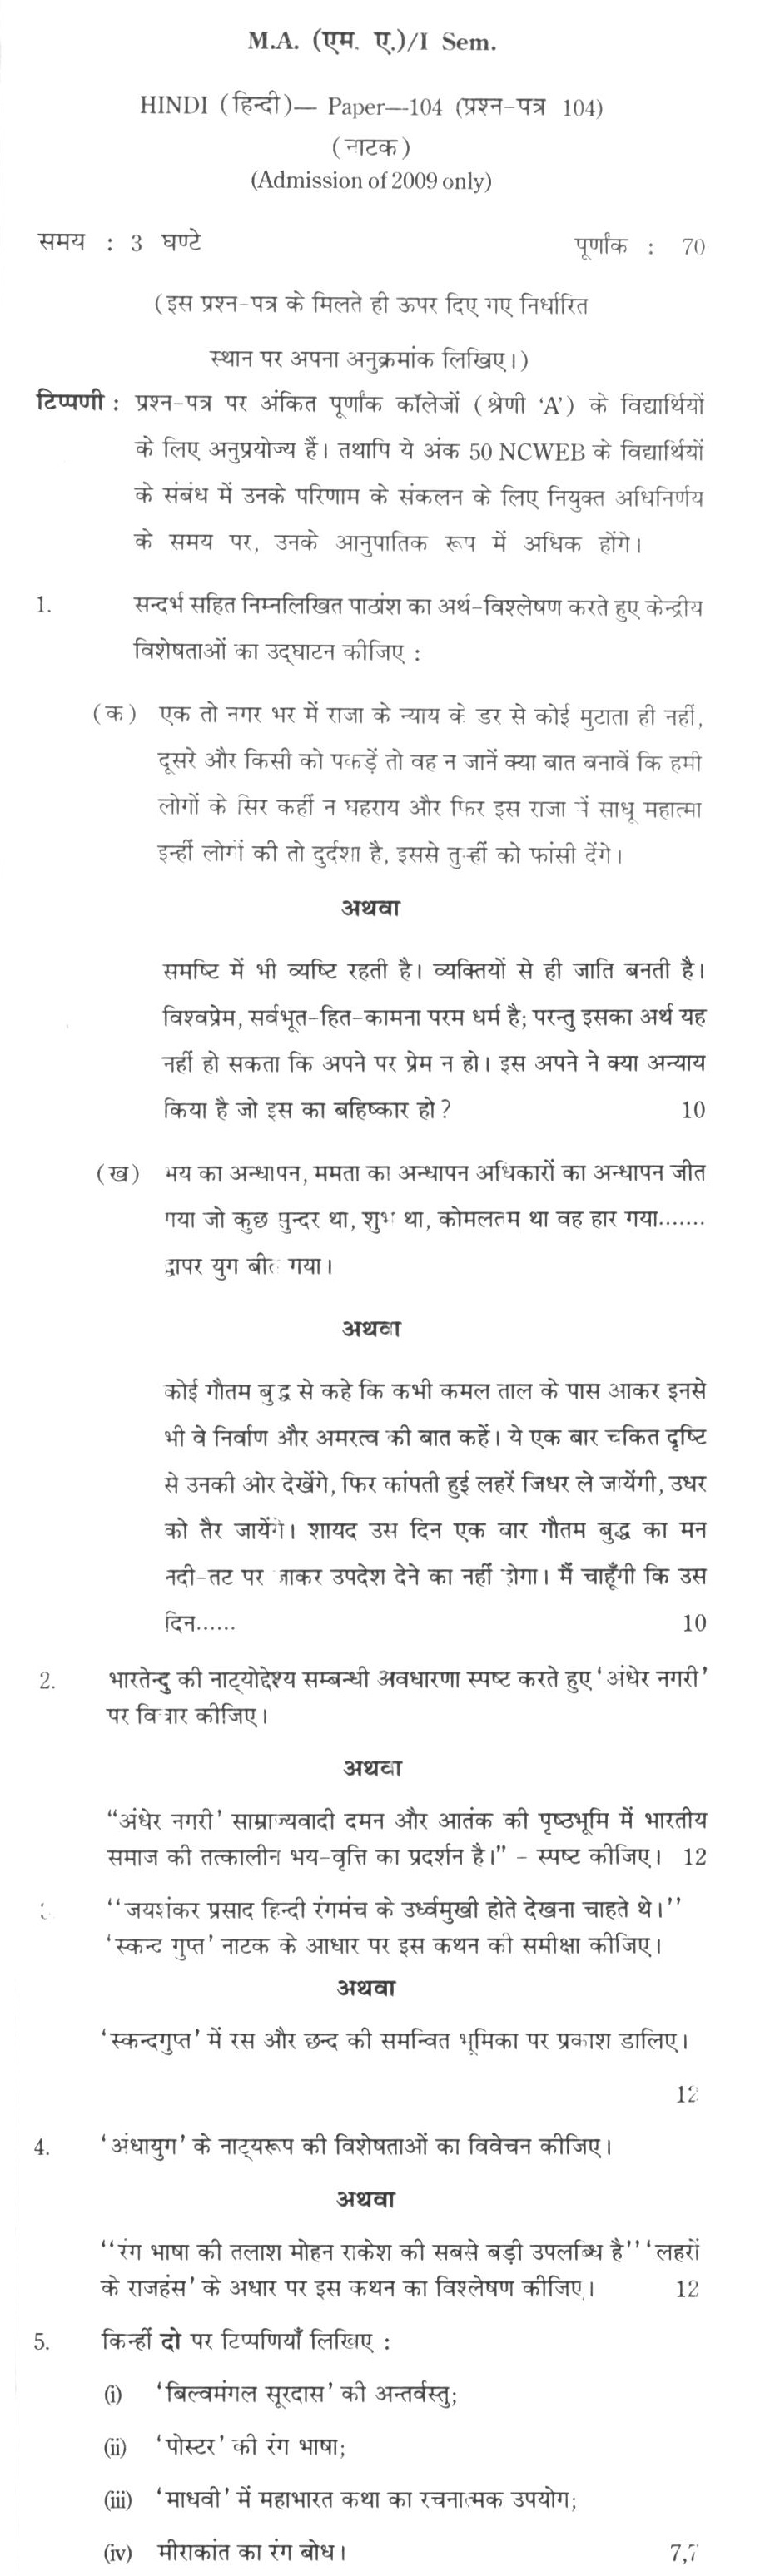 DU SOL M.A. Hindi Question Paper - I Semester Natak - Paper 104